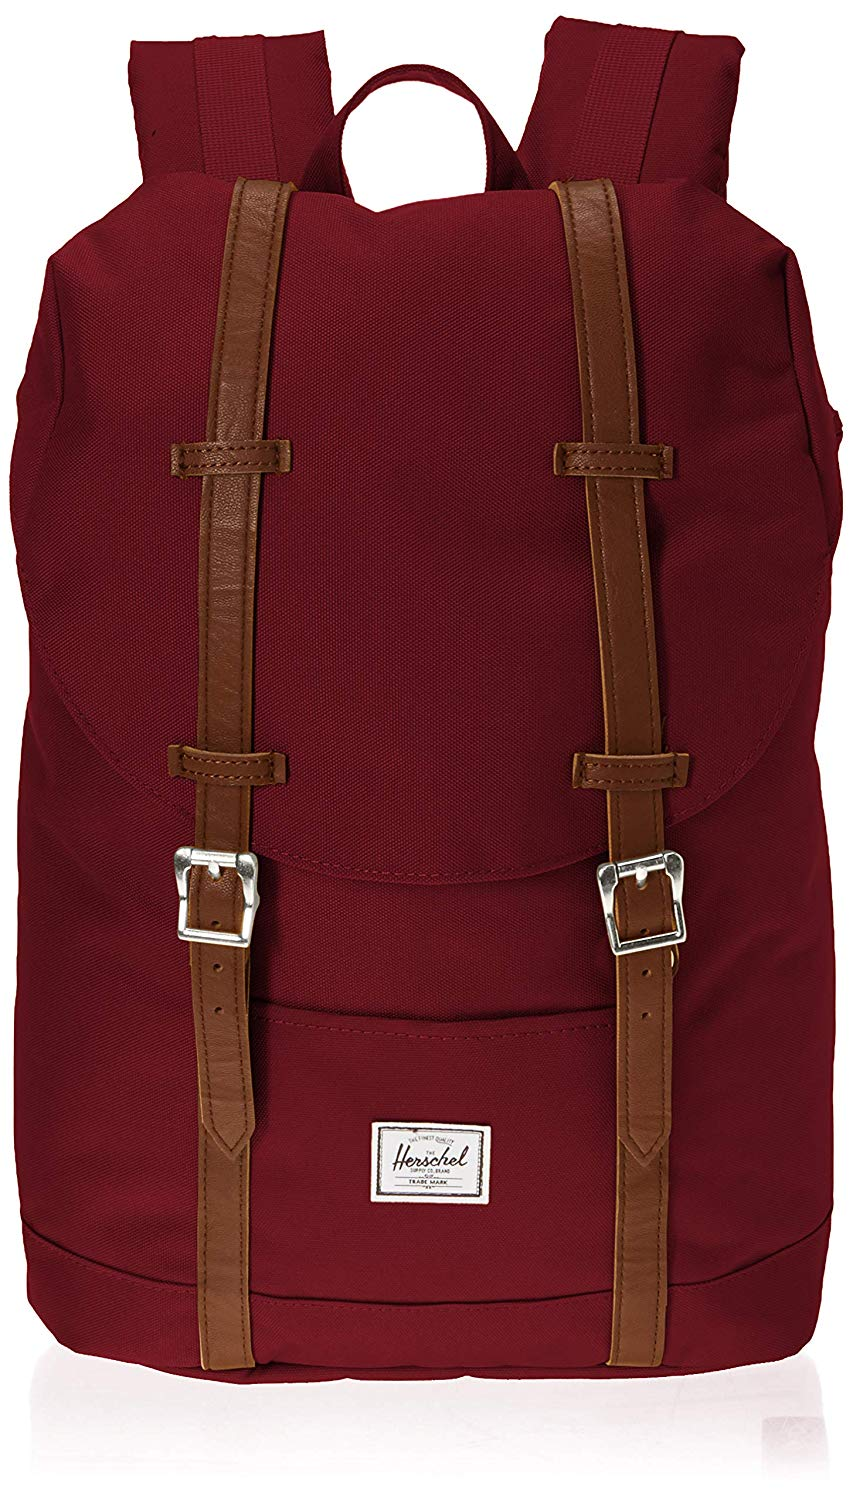 [Image description: Wine red crosshatch backpack has two brown straps holding it together.] via Amazon